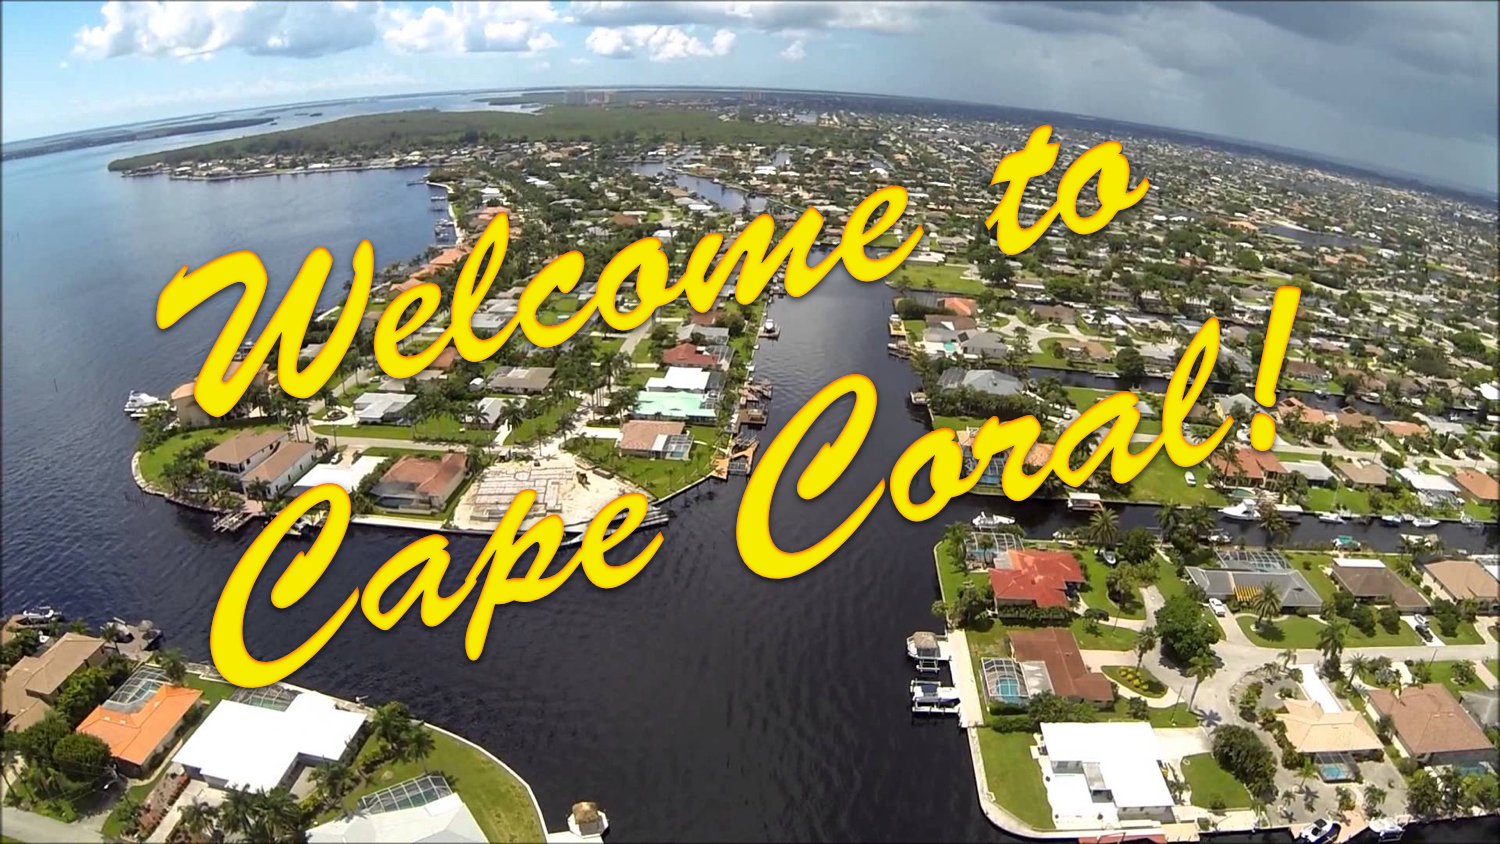 Welcome to Cape Coral